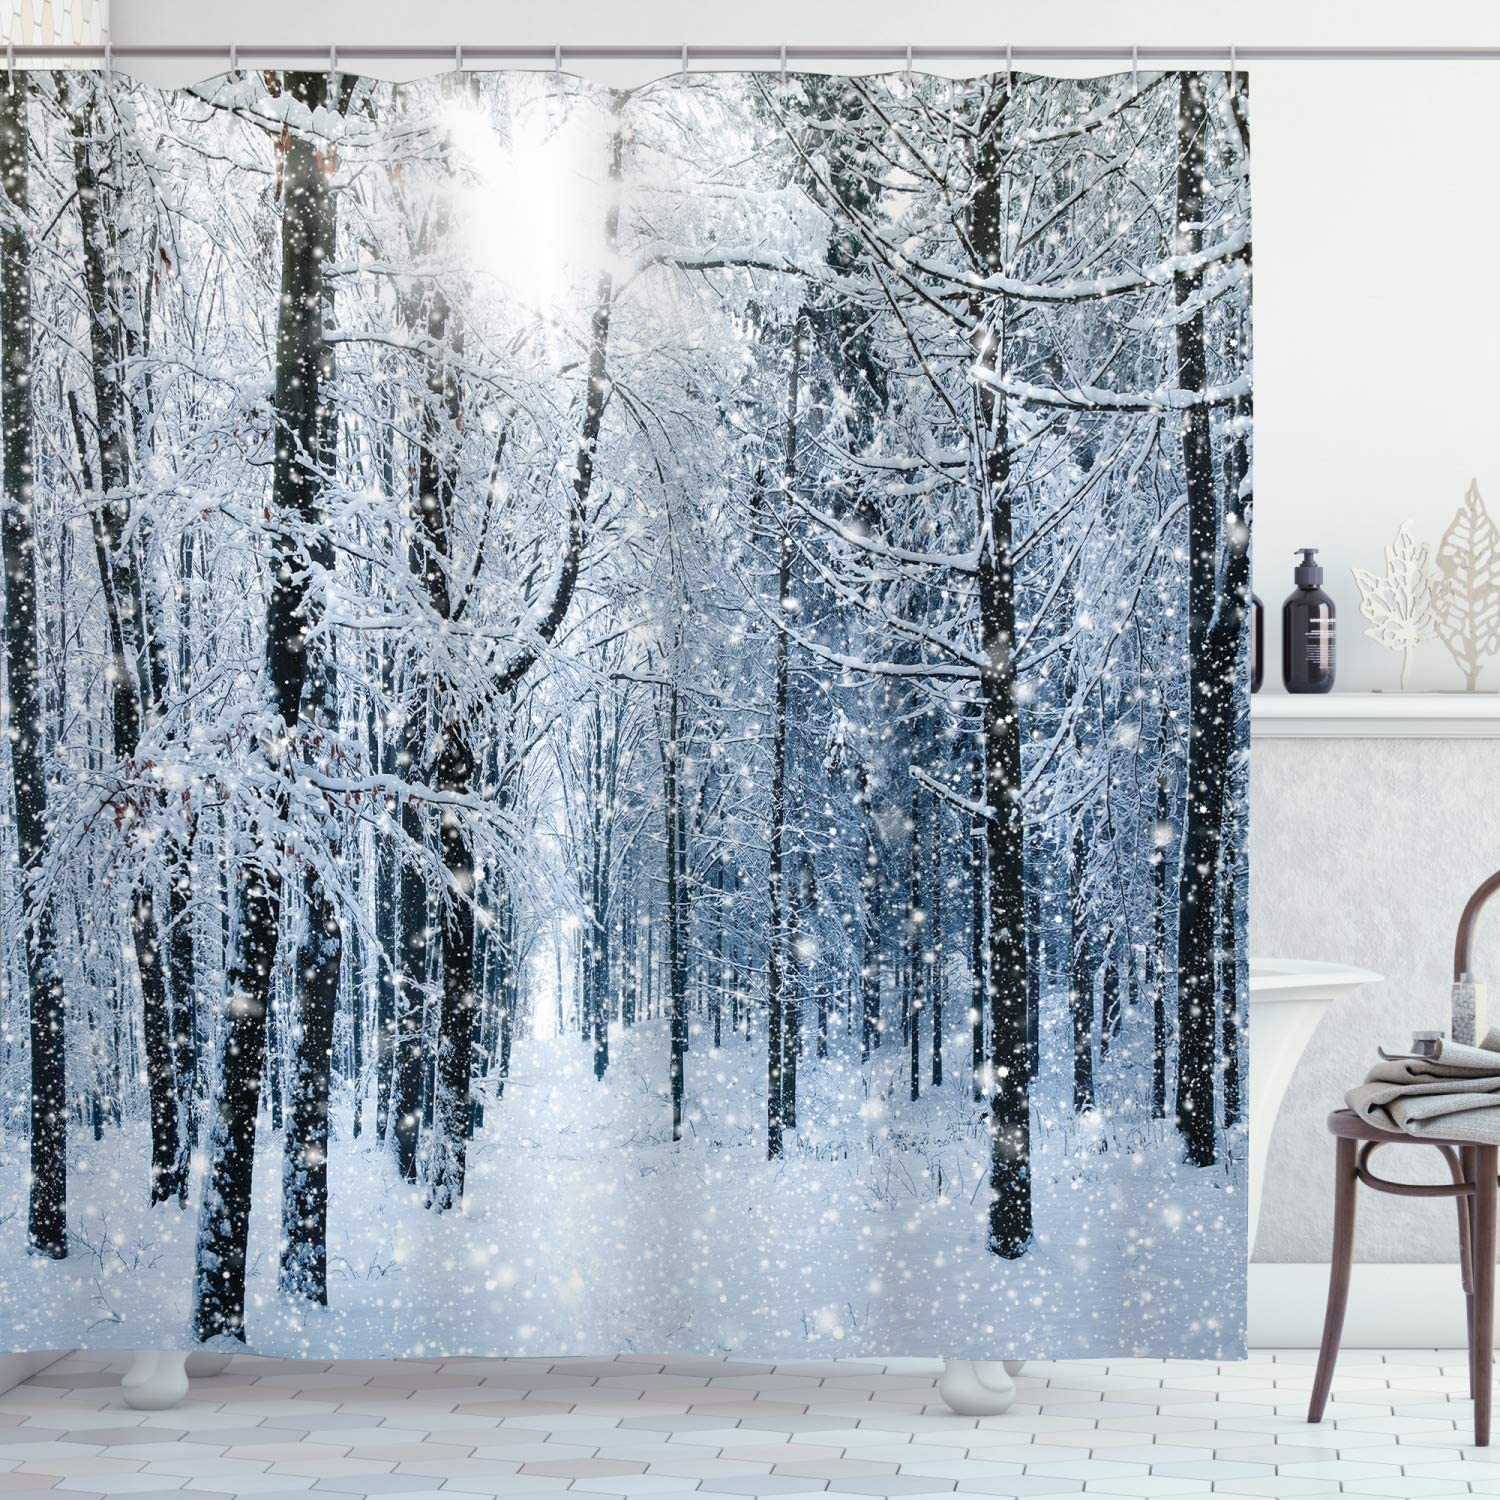 Winter Snow Hill Forest View Waterproof Fabric /&12 Hooks Bathroom Shower Curtain